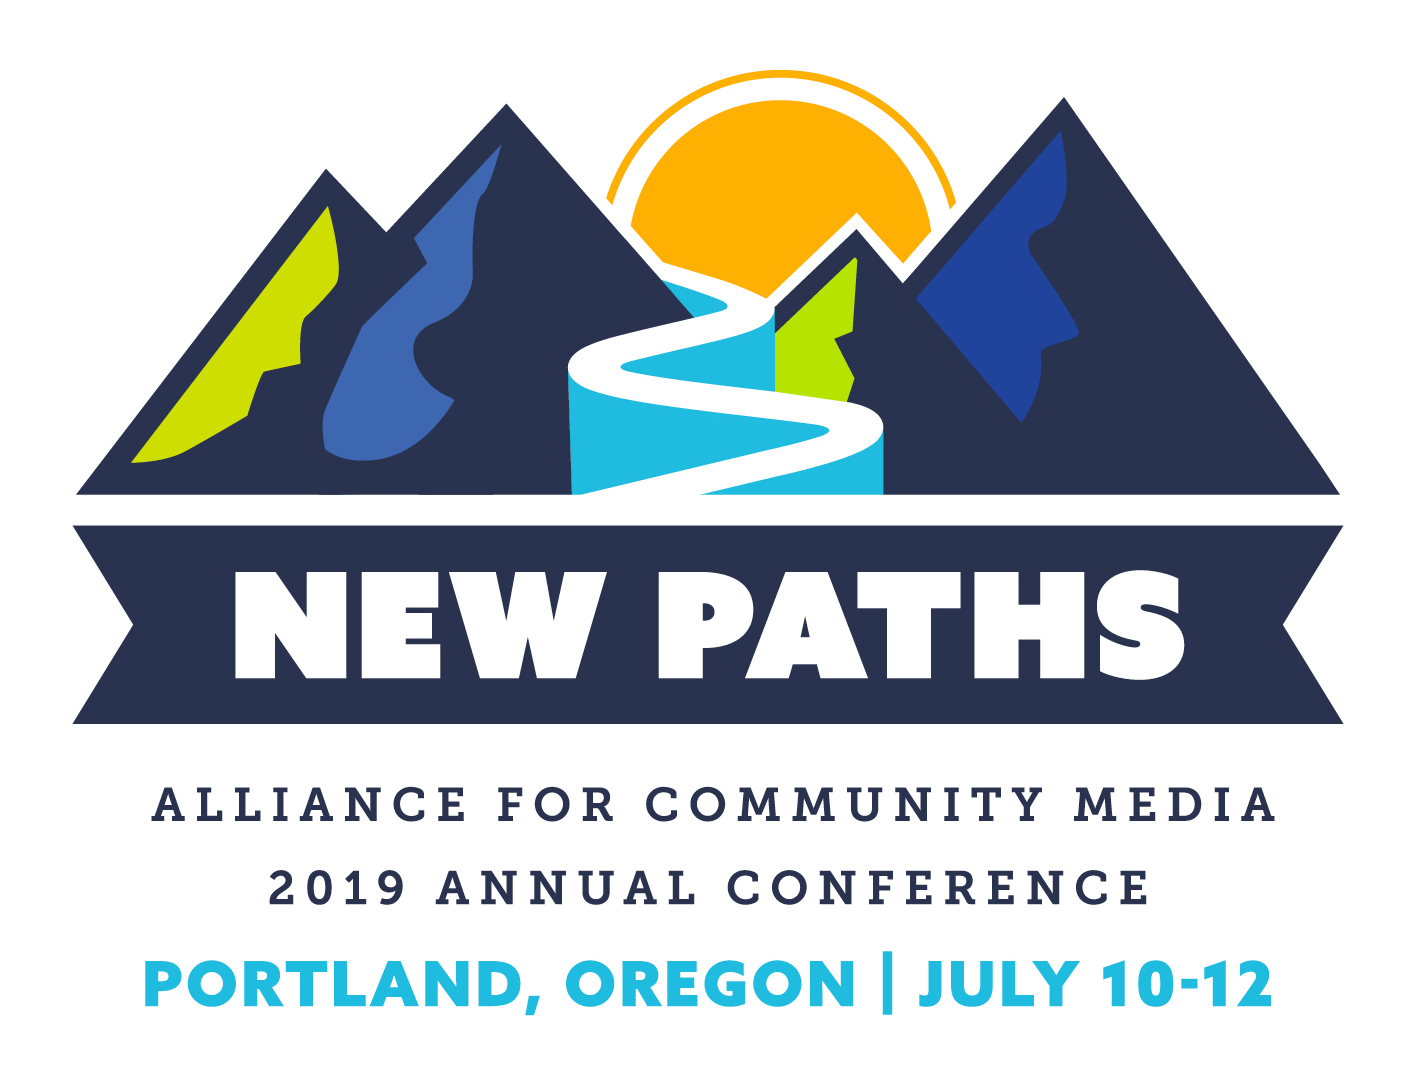 New Paths: Alliance for Community Media 2019 Annual Conference